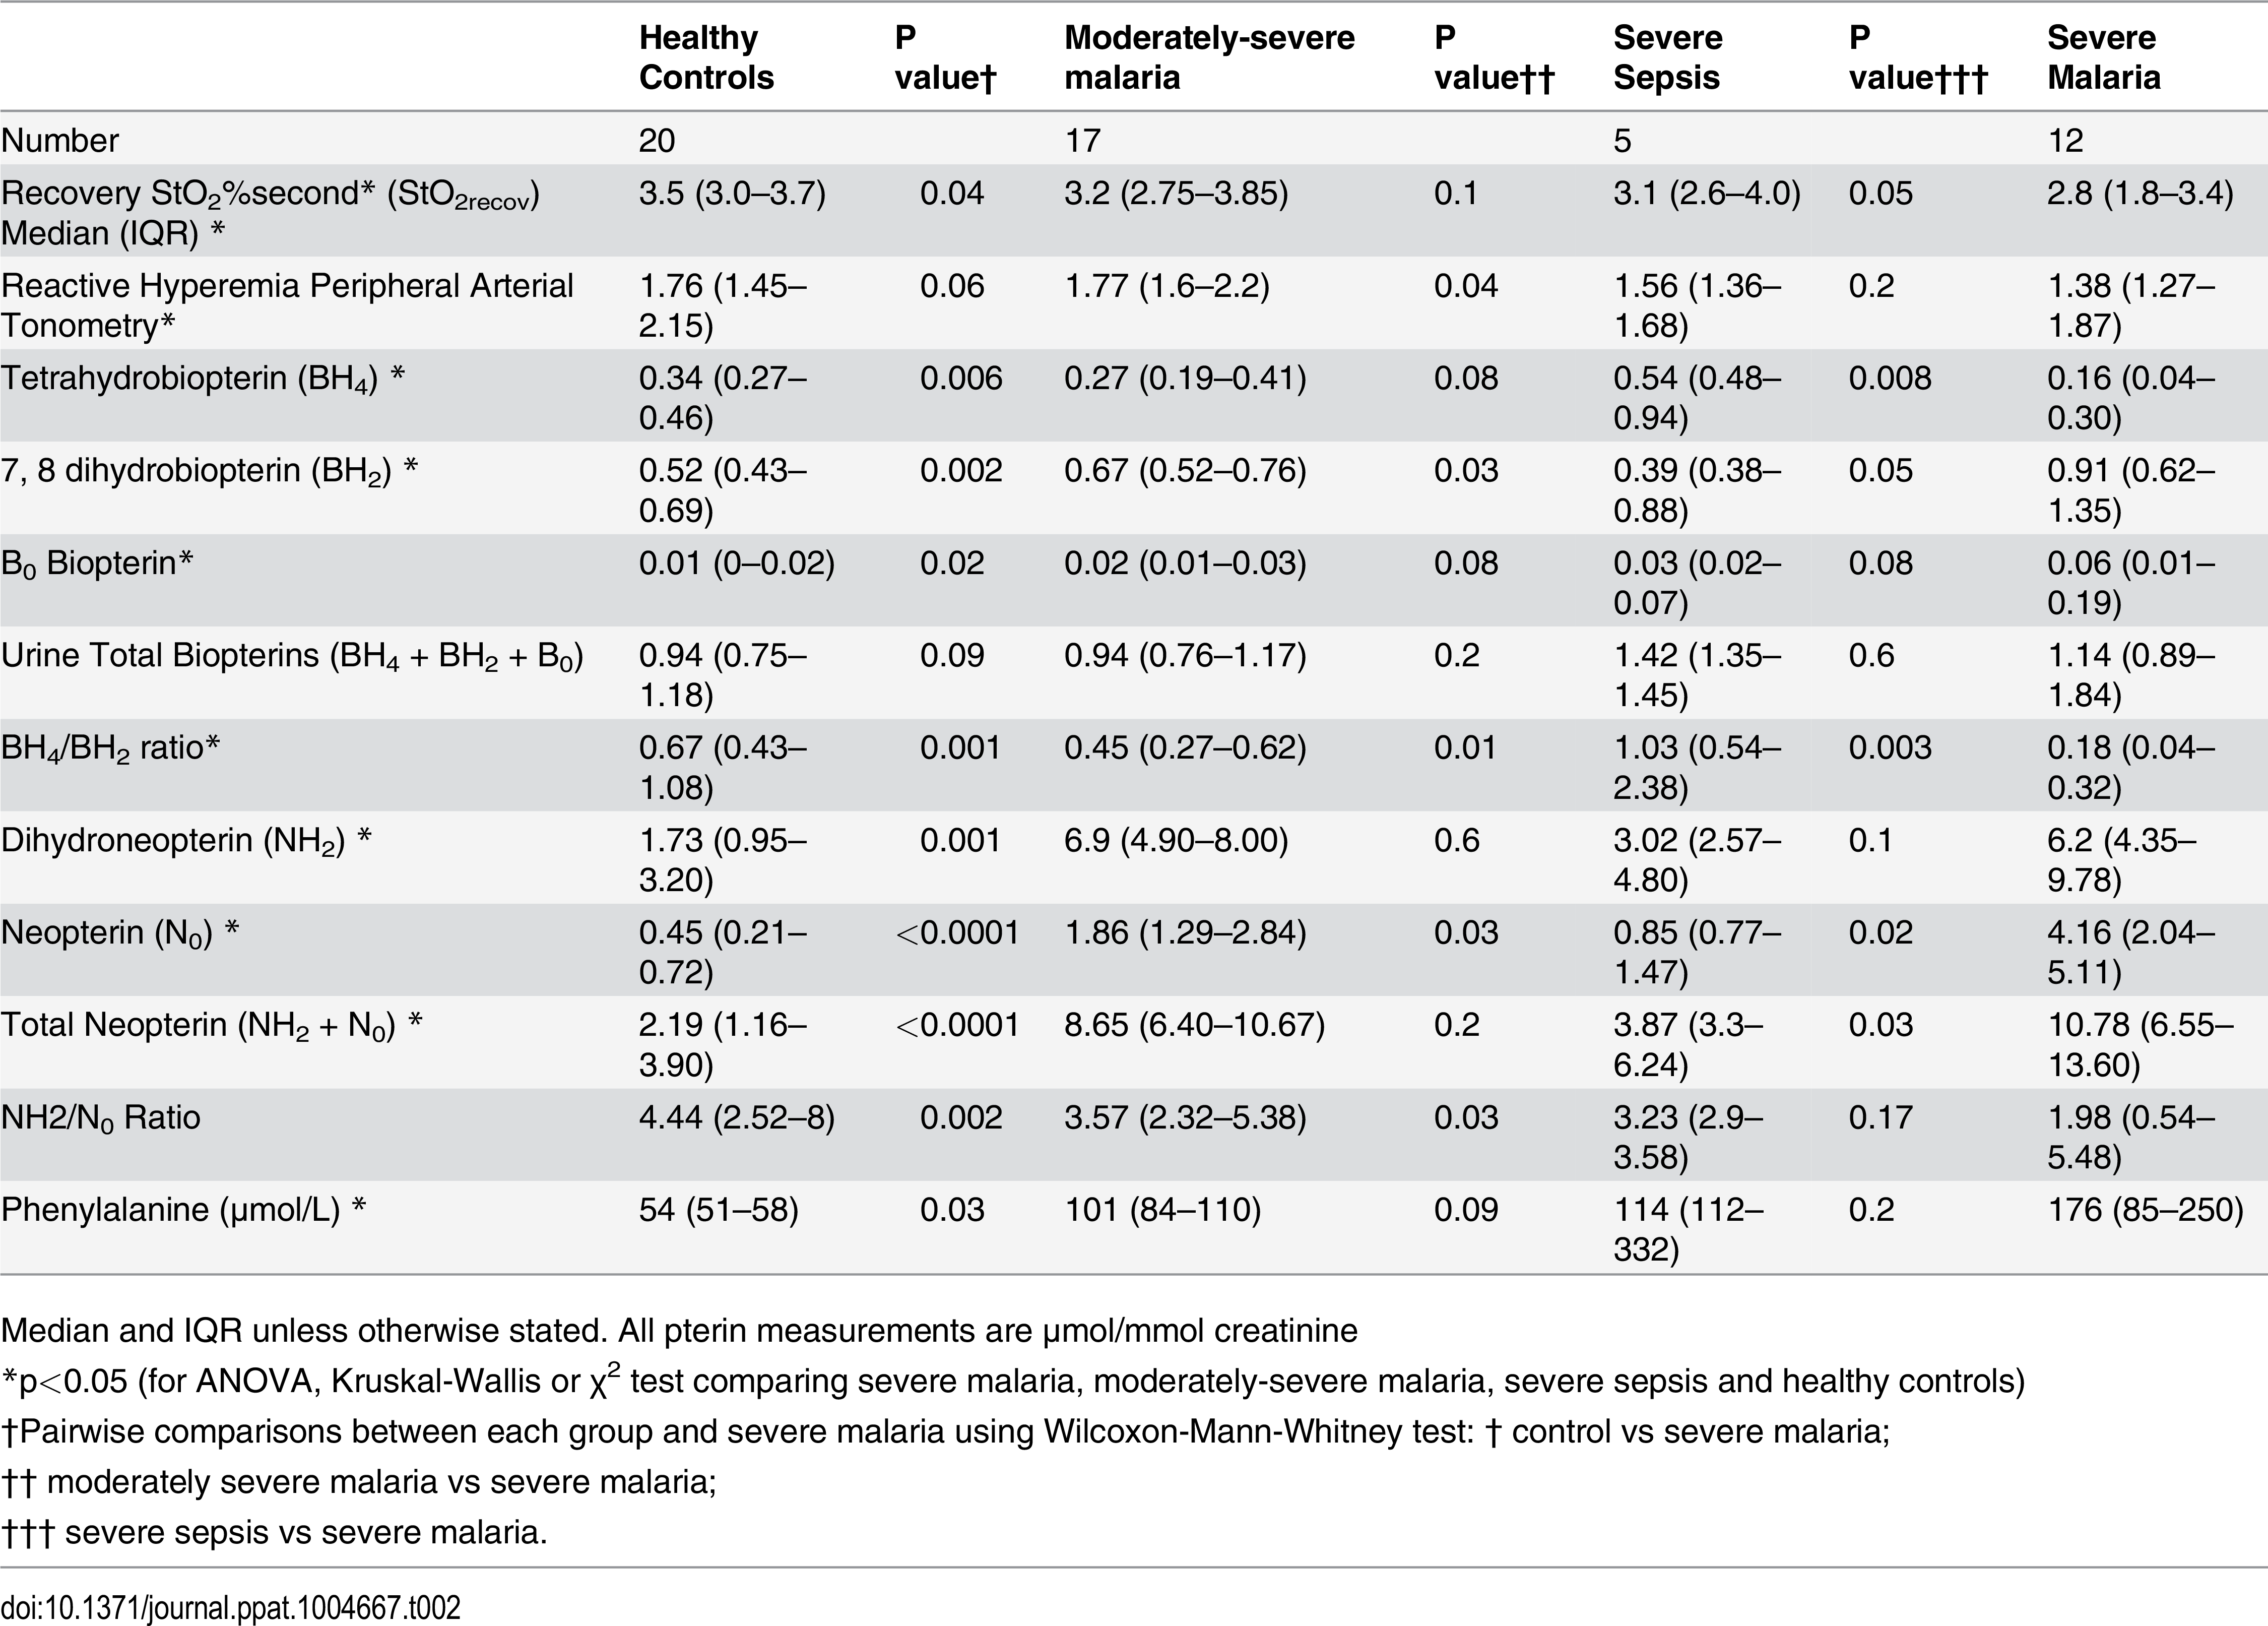 Microvascular reactivity, endothelial function and biopterin metabolite values among patient groups.